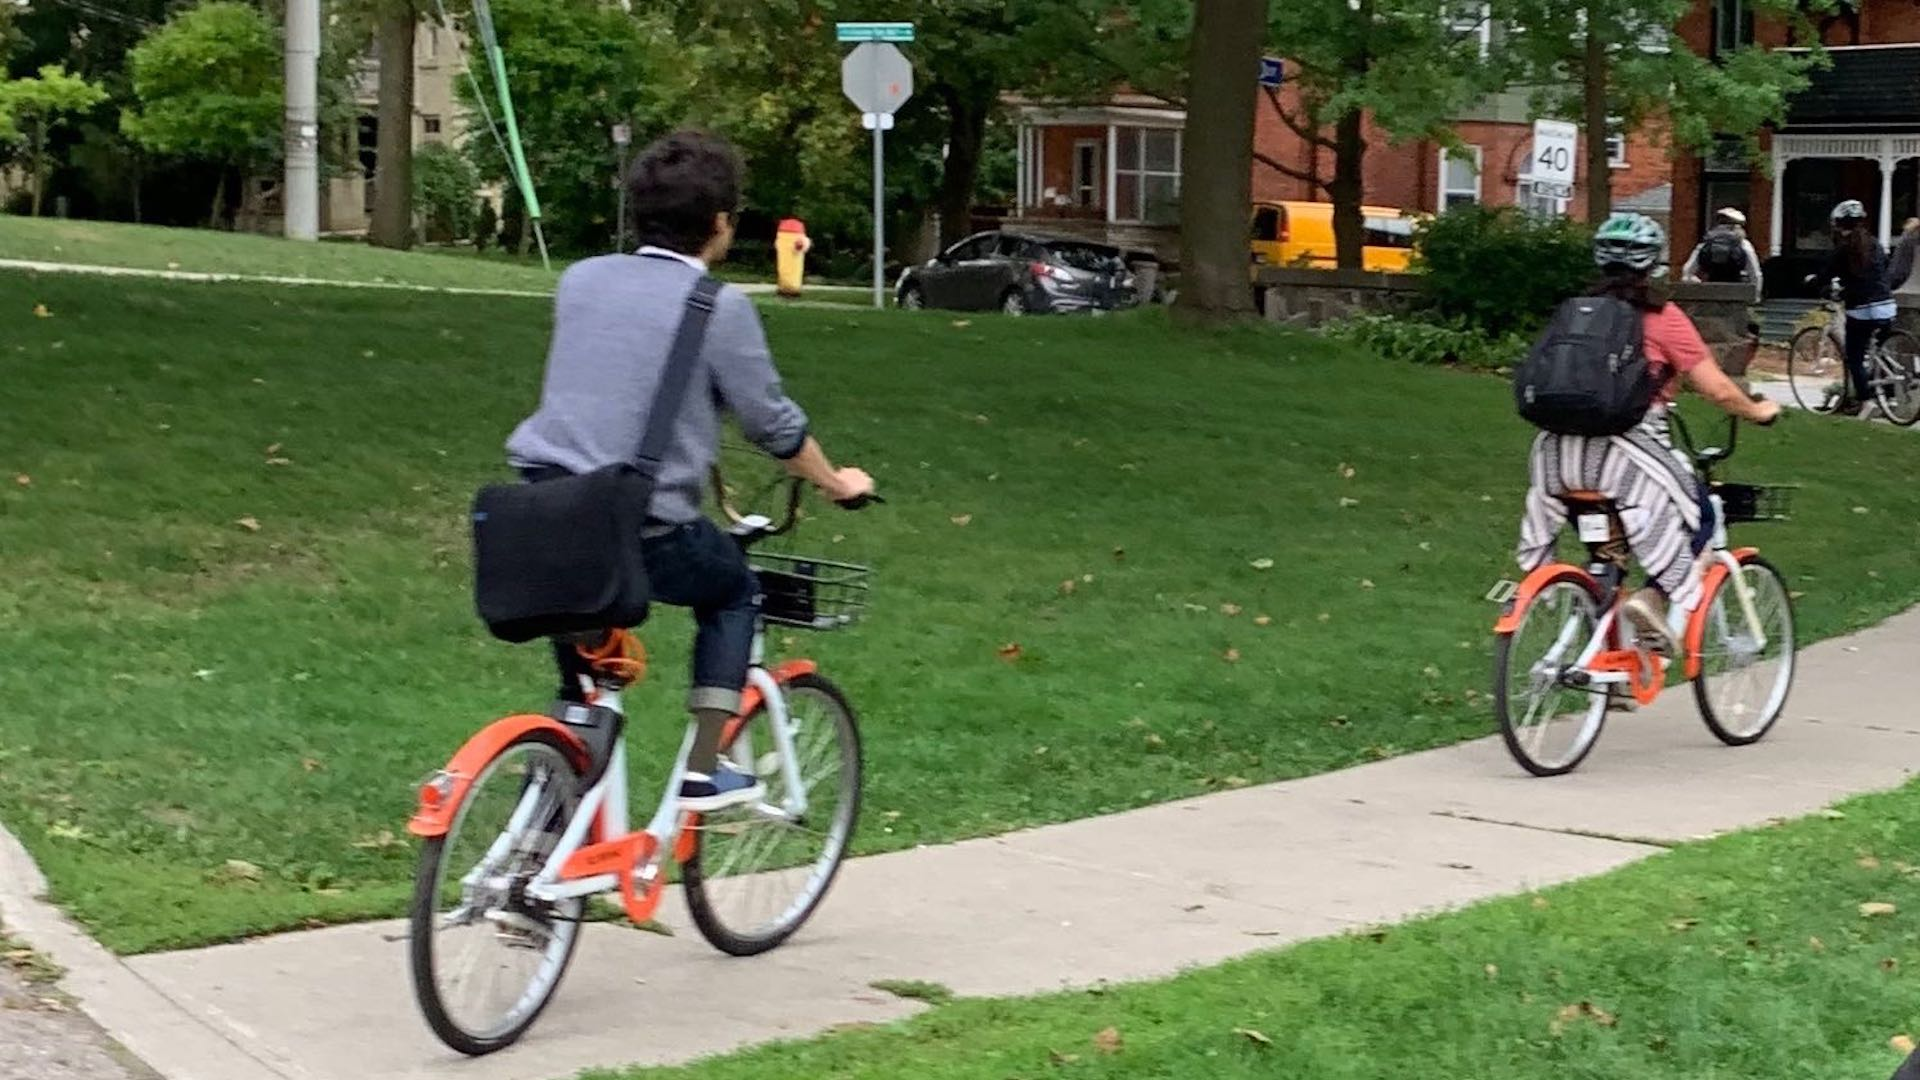 Two cyclists ride Dropbikes on a Kitchener street